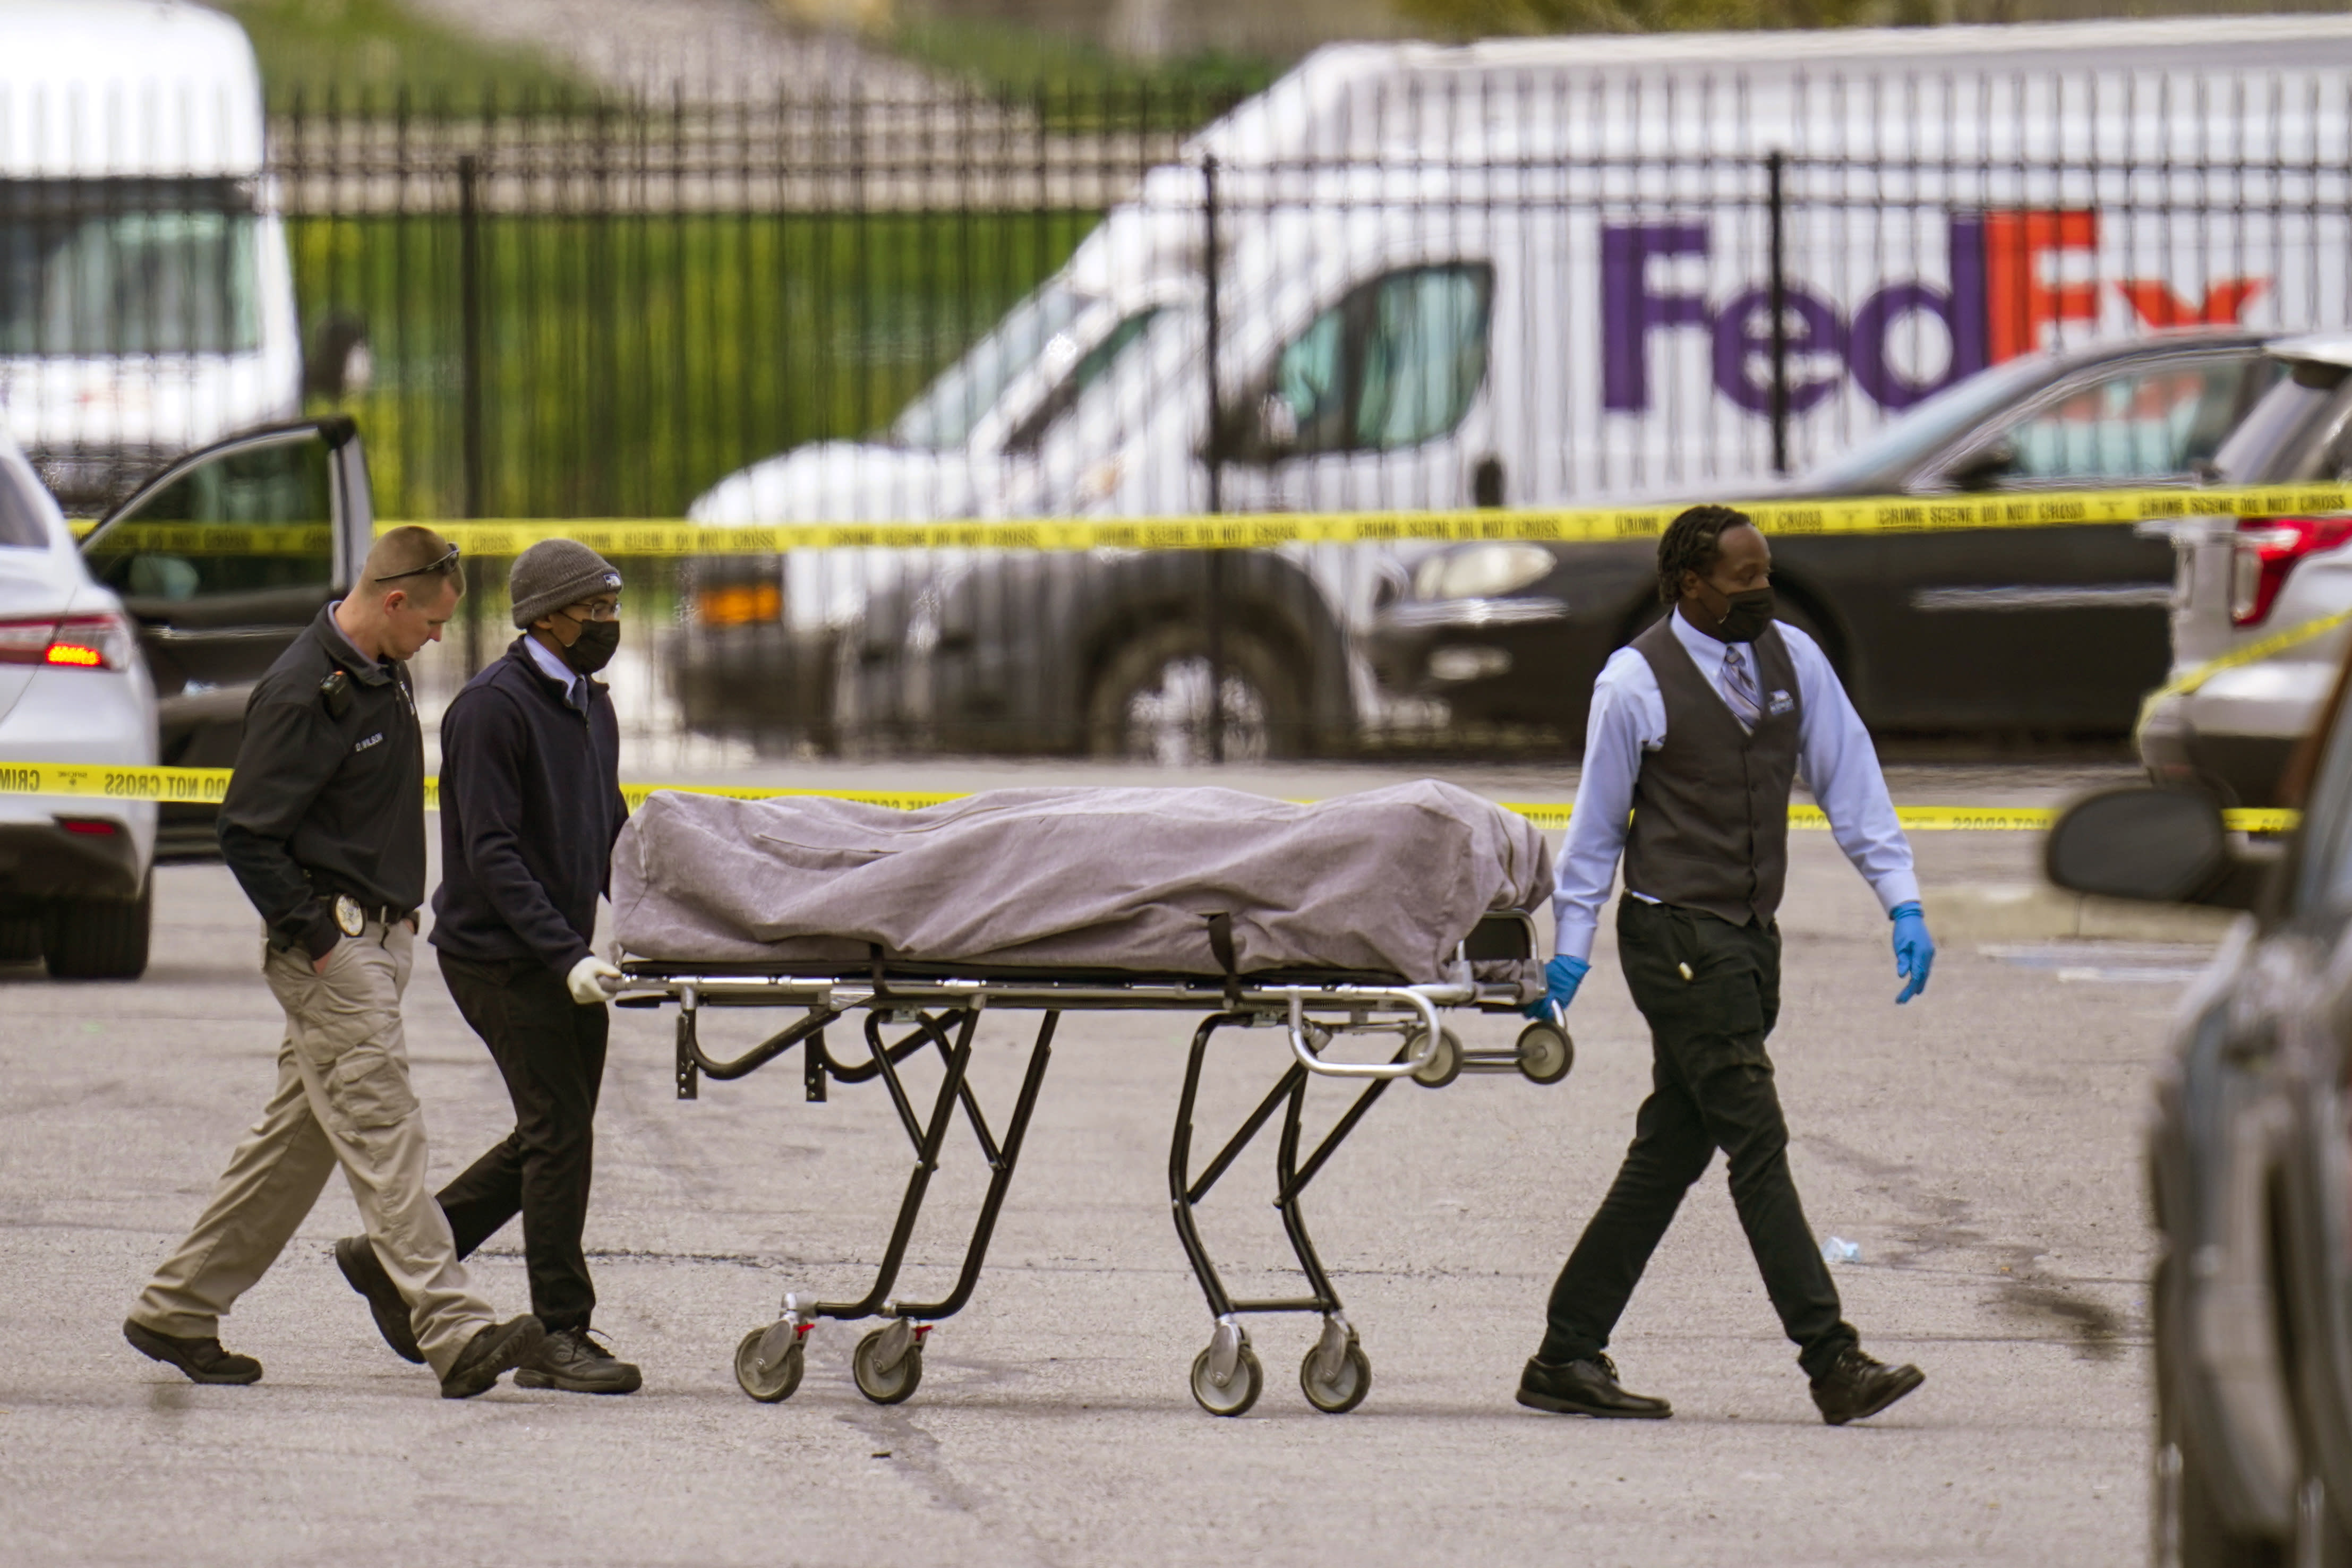 Indianapolis FedEx shooting victims identified